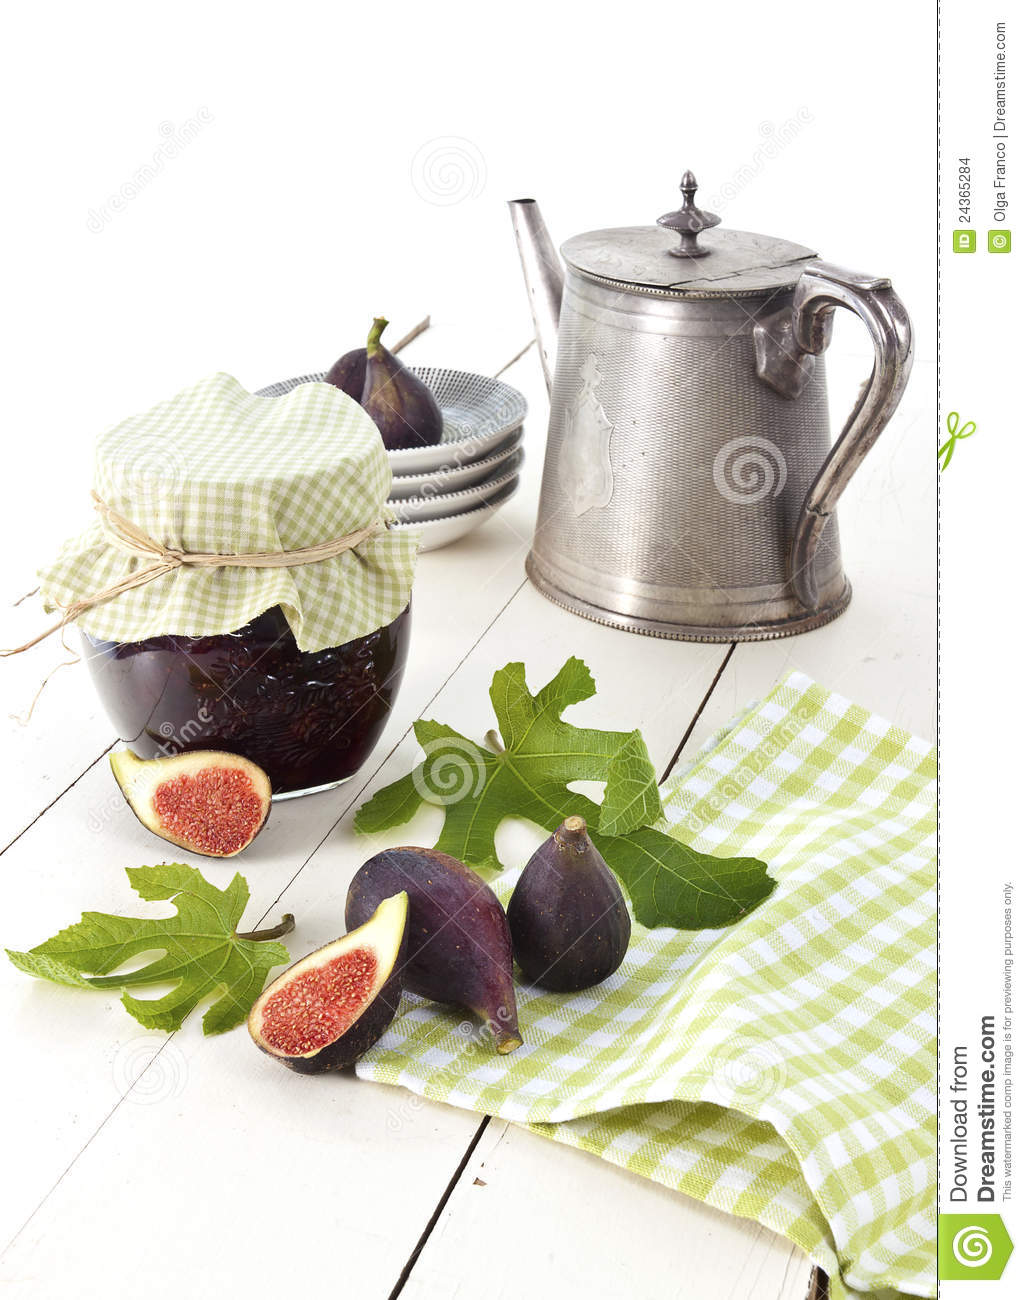 Black mission fig jam and fresh figs with leaves. French country style ...